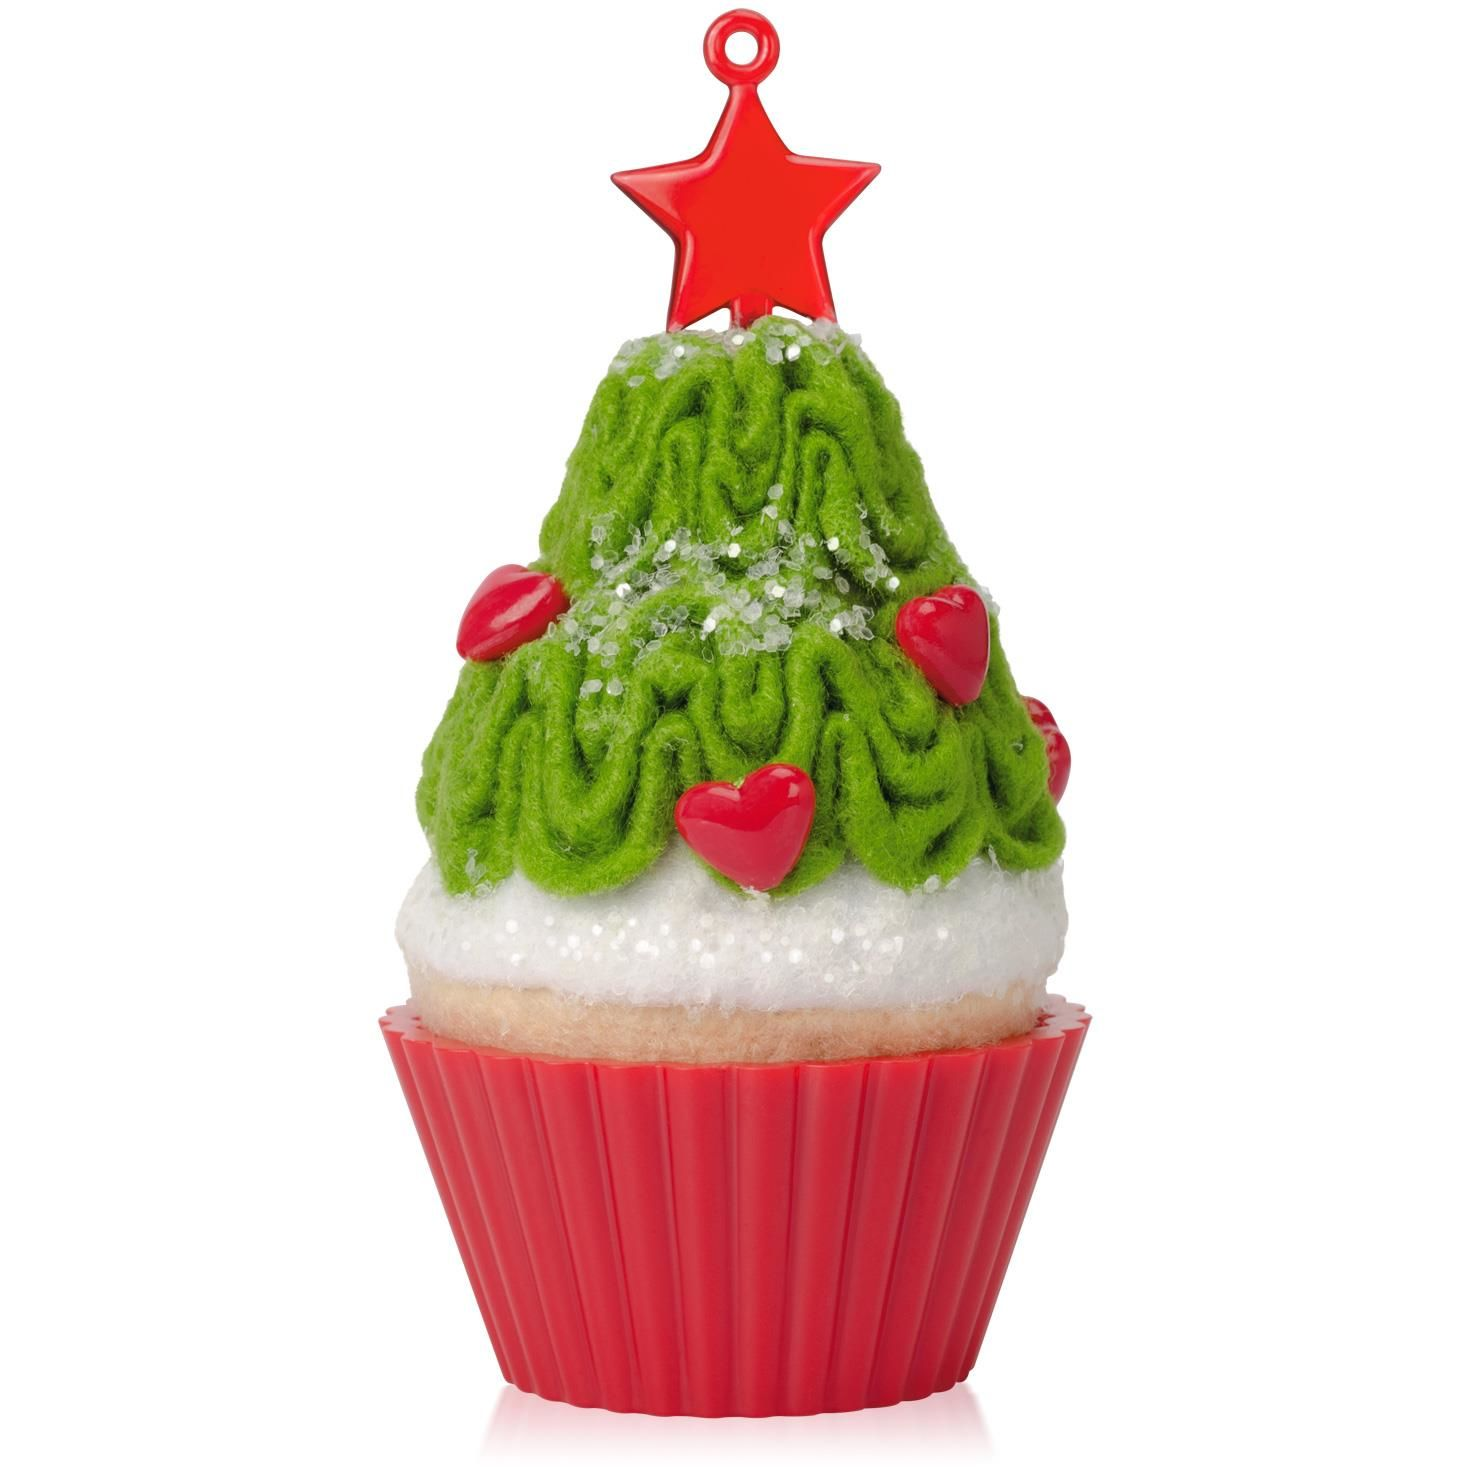 Mini Tannenbaum 2015 Christmas Cupcake Tasty Tannenbaum Hallmark Keepsake Ornament Hooked On Hallmark Ornaments